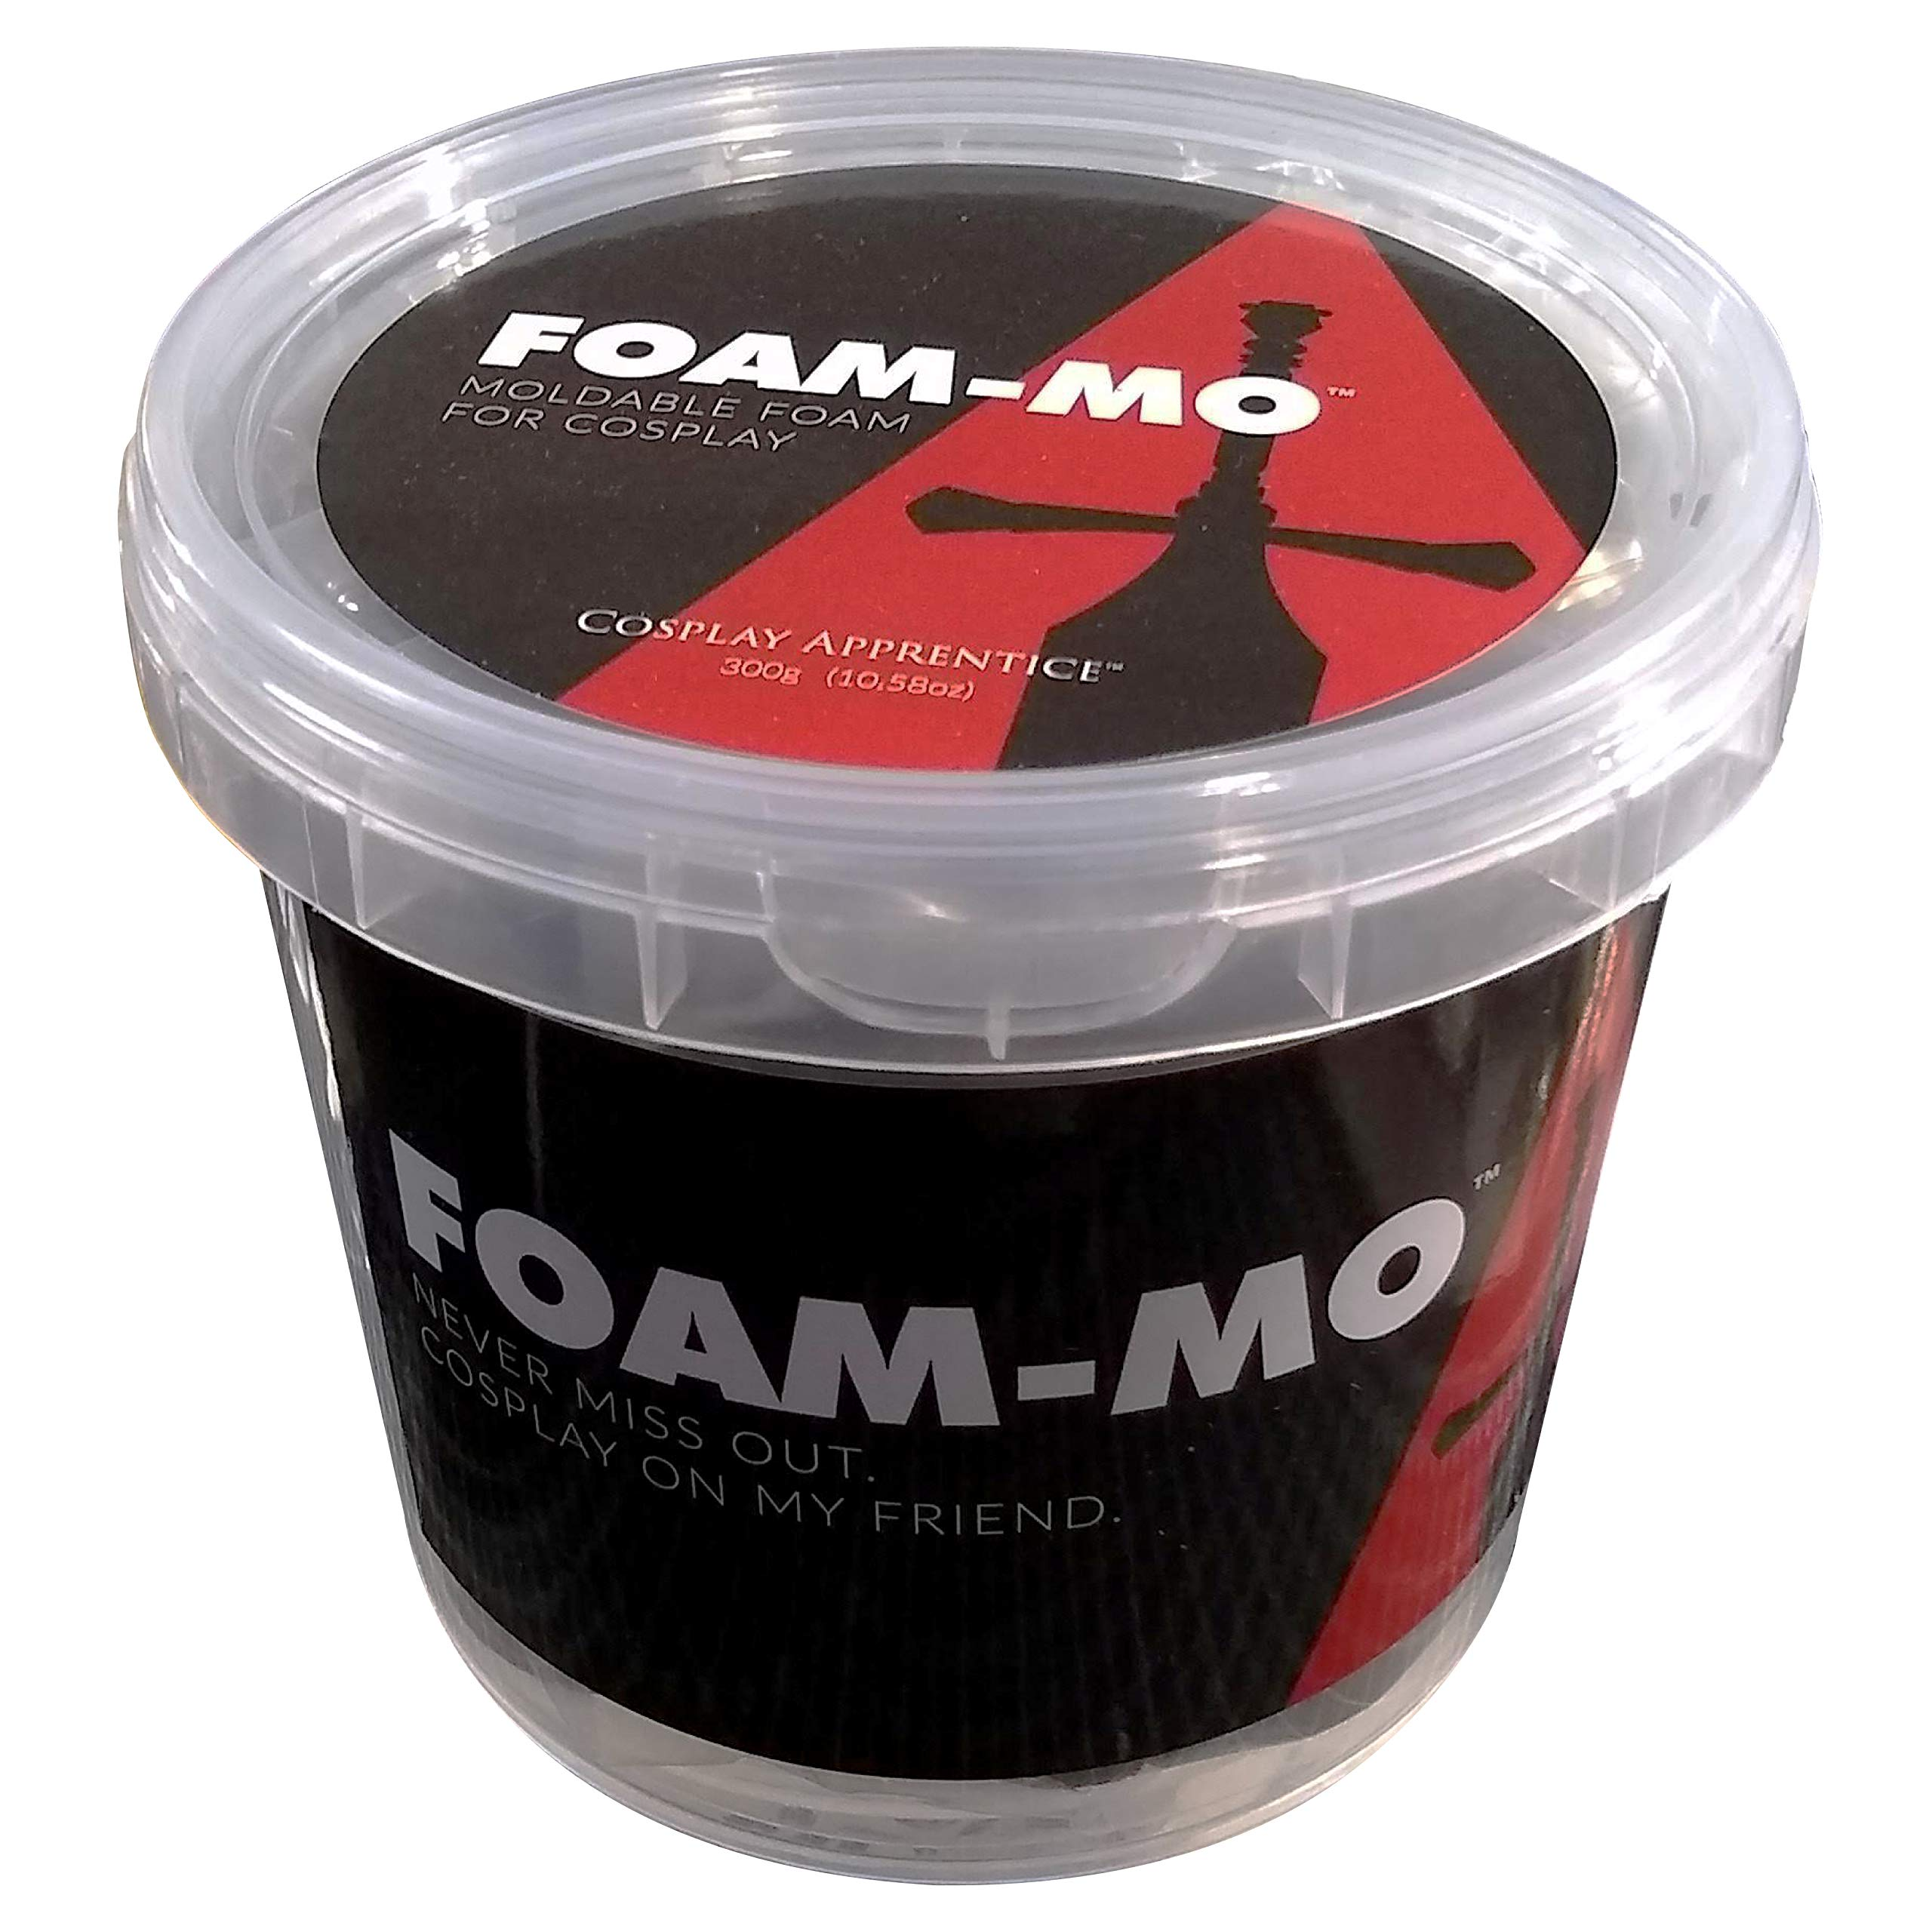 Foam-Mo Air Dry Moldable Foam Clay for Cosplay 300 Gram by Cosplay Apprentice